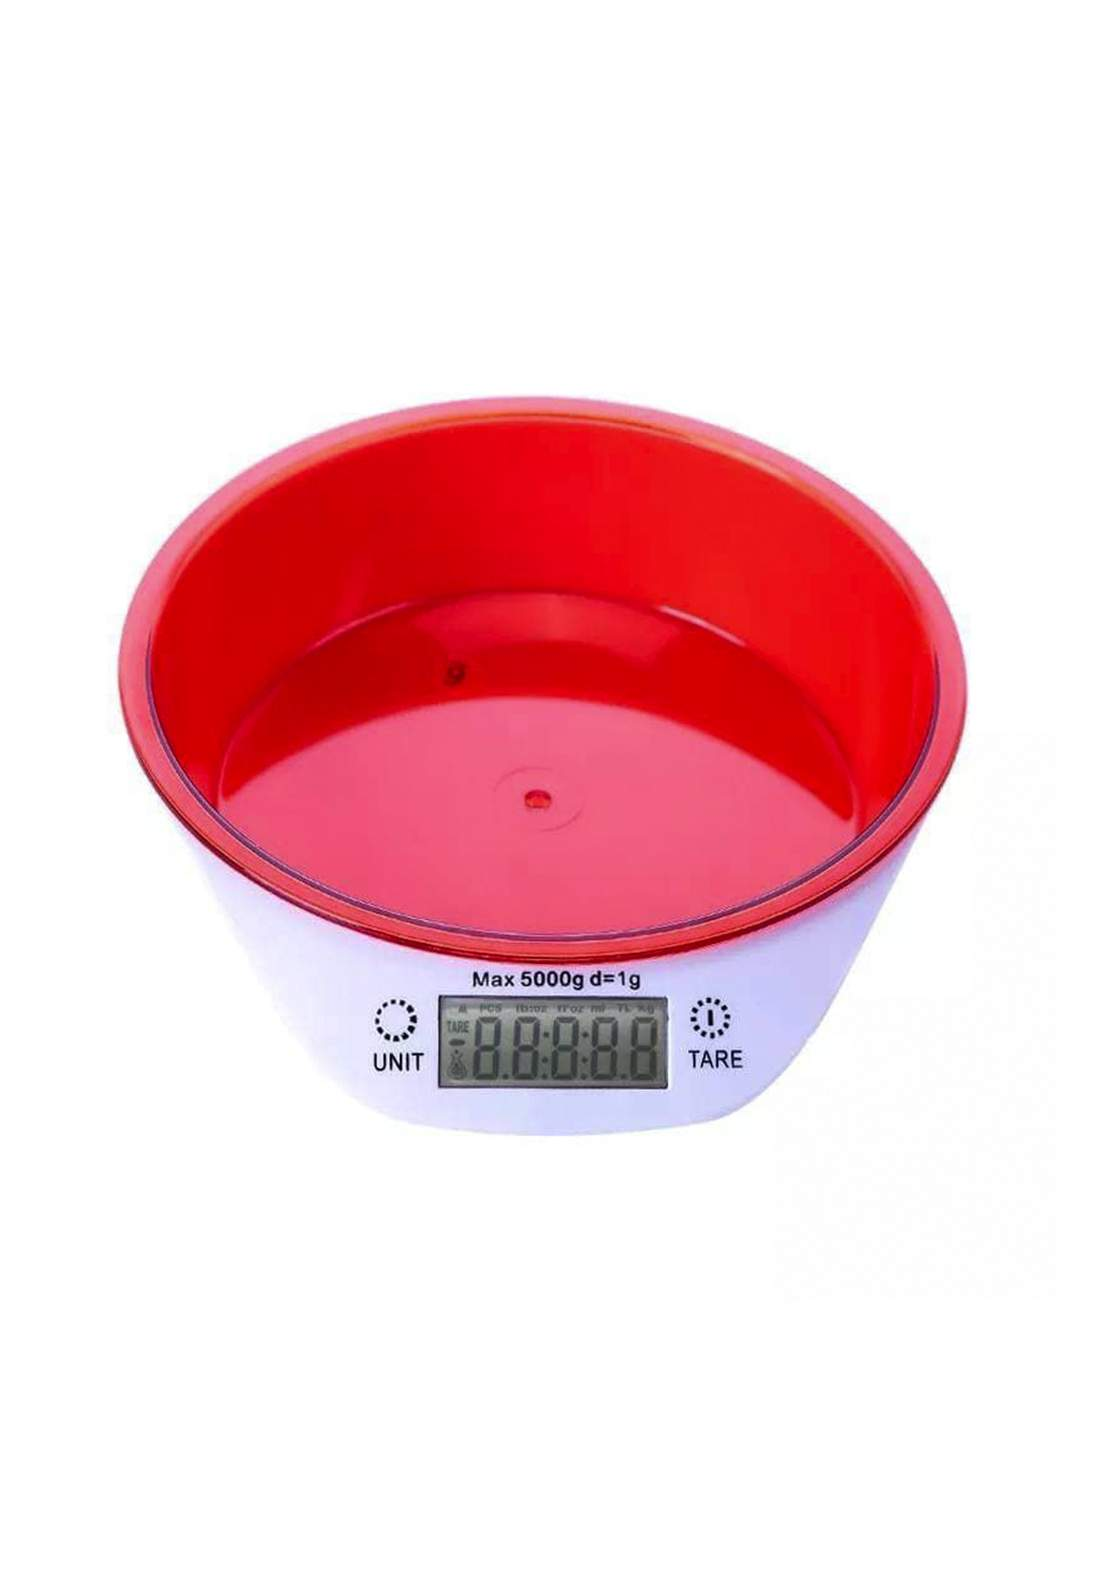 Food Scales Digital Weight Grams and Oz for the Kitchen Weighing Scale ميزان طعام